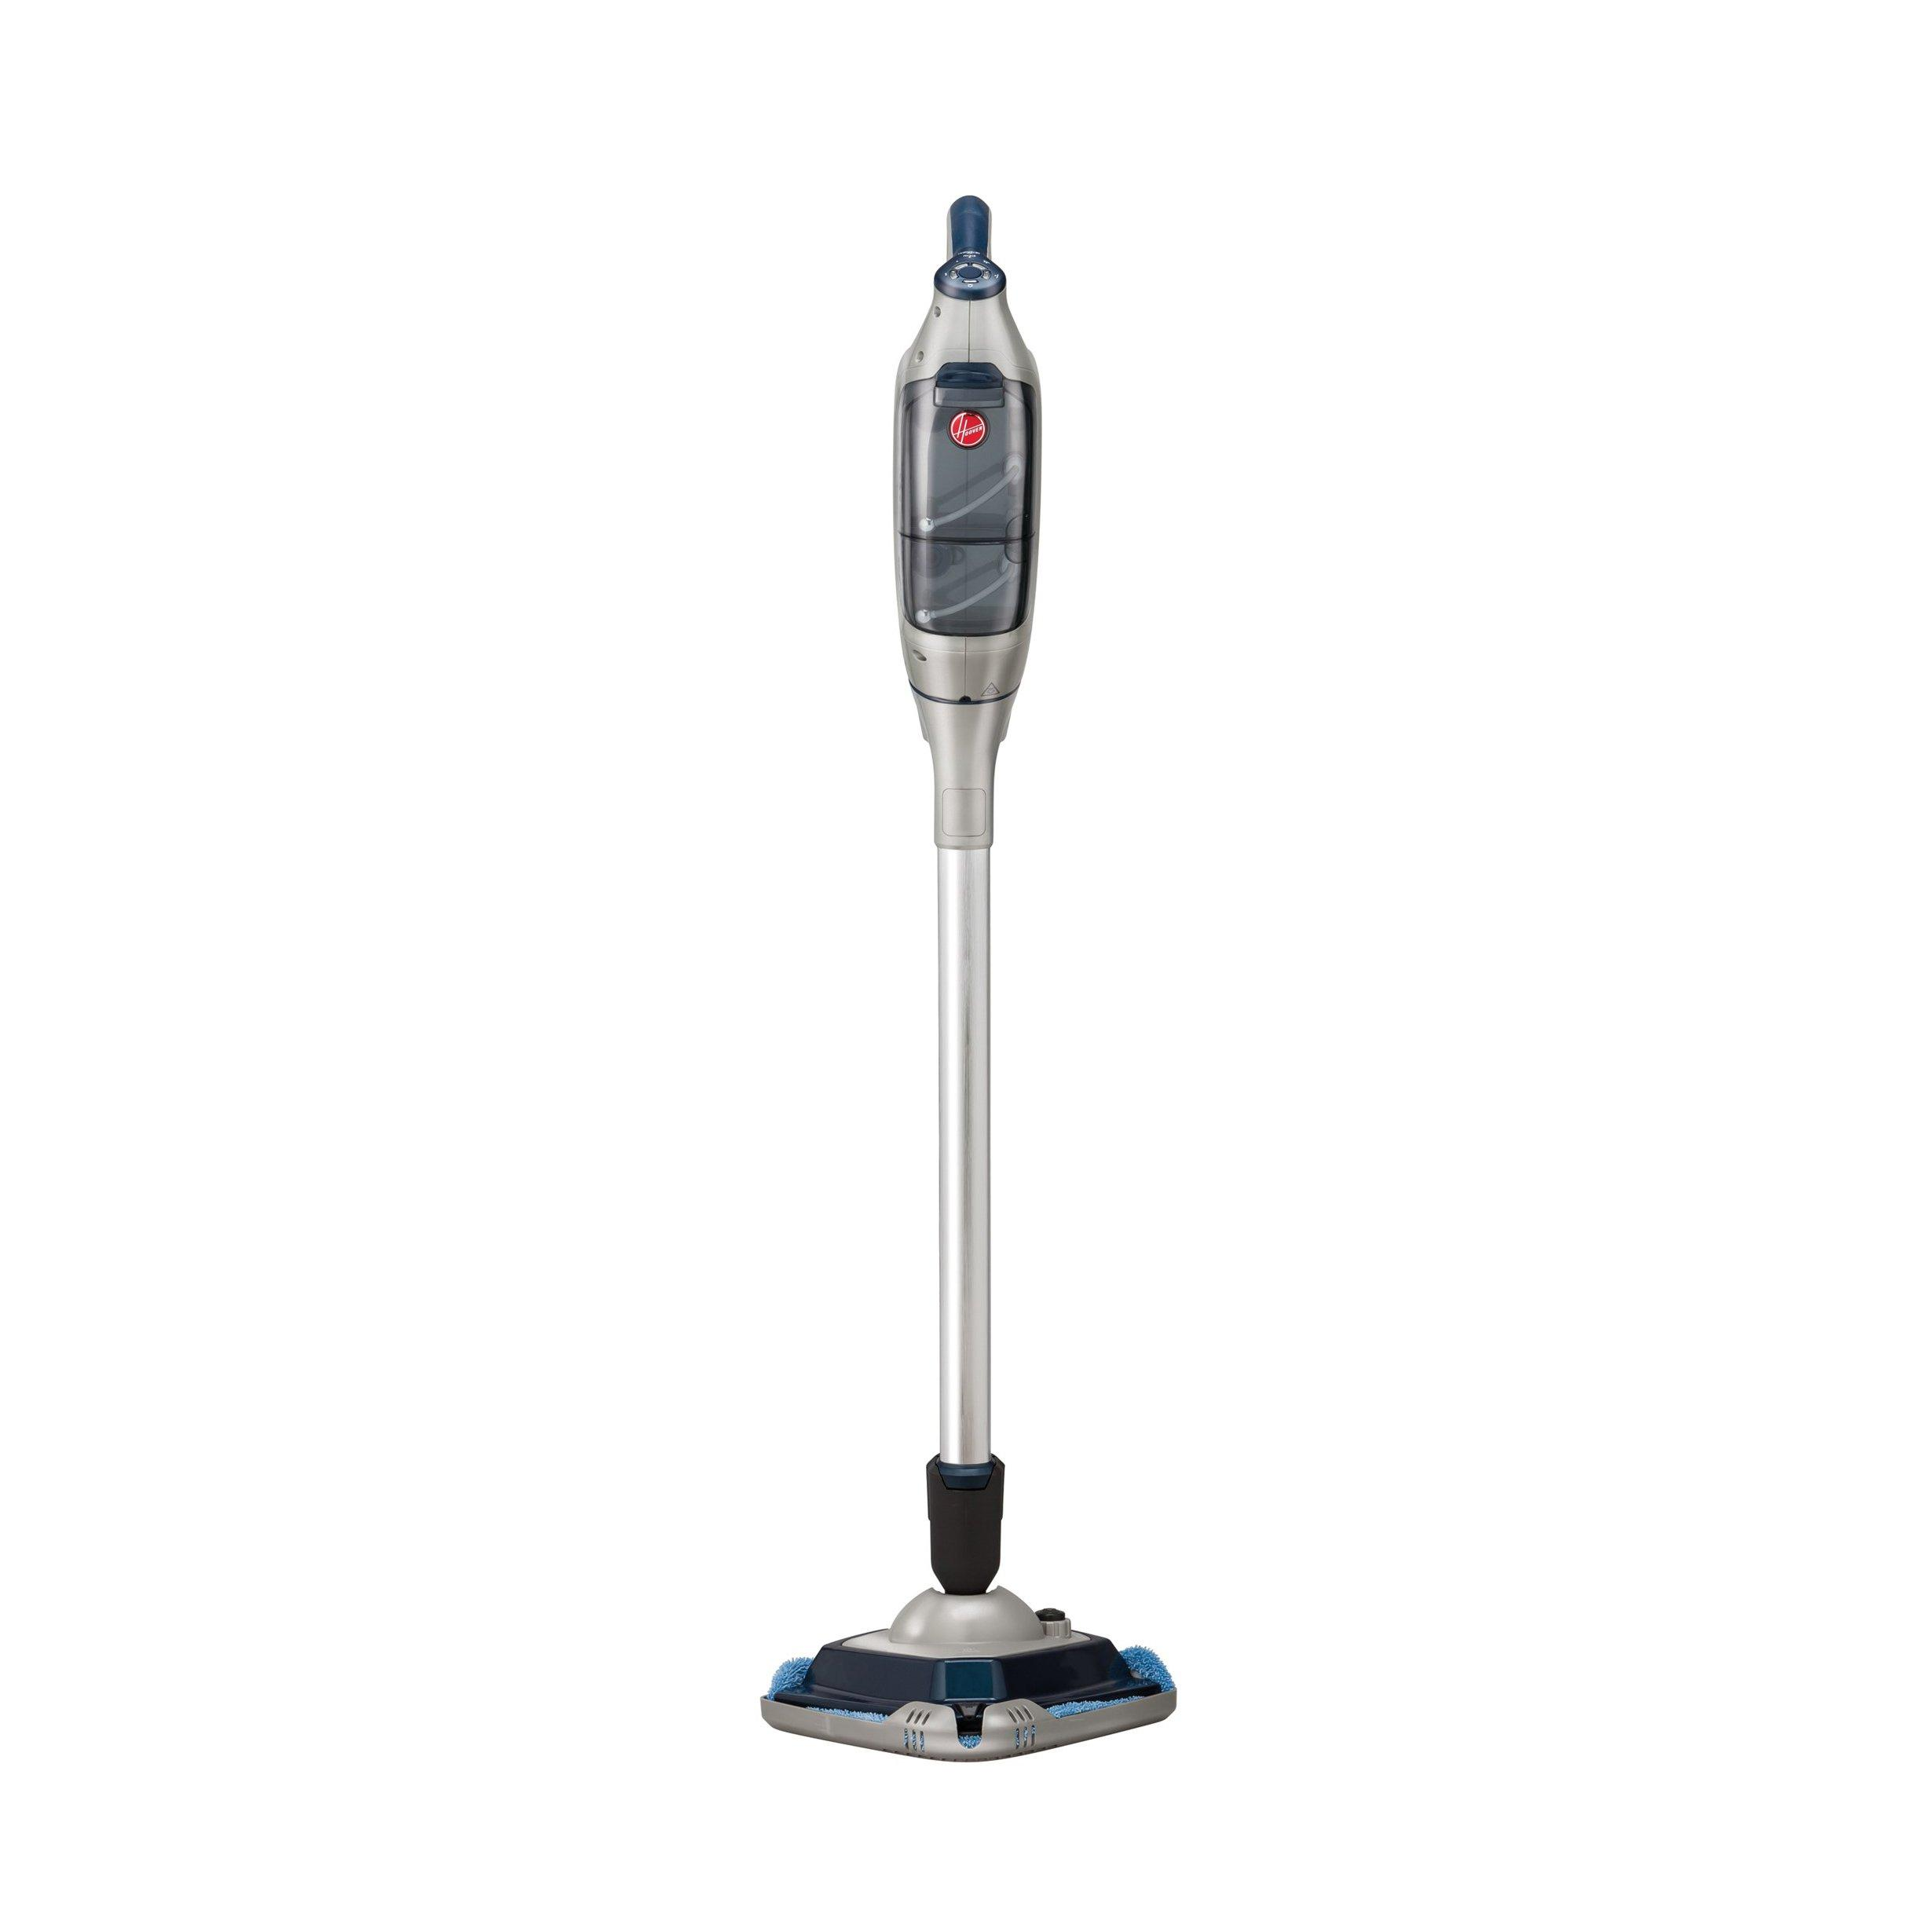 Hoover SteamScrub 3-IN-1 Reach